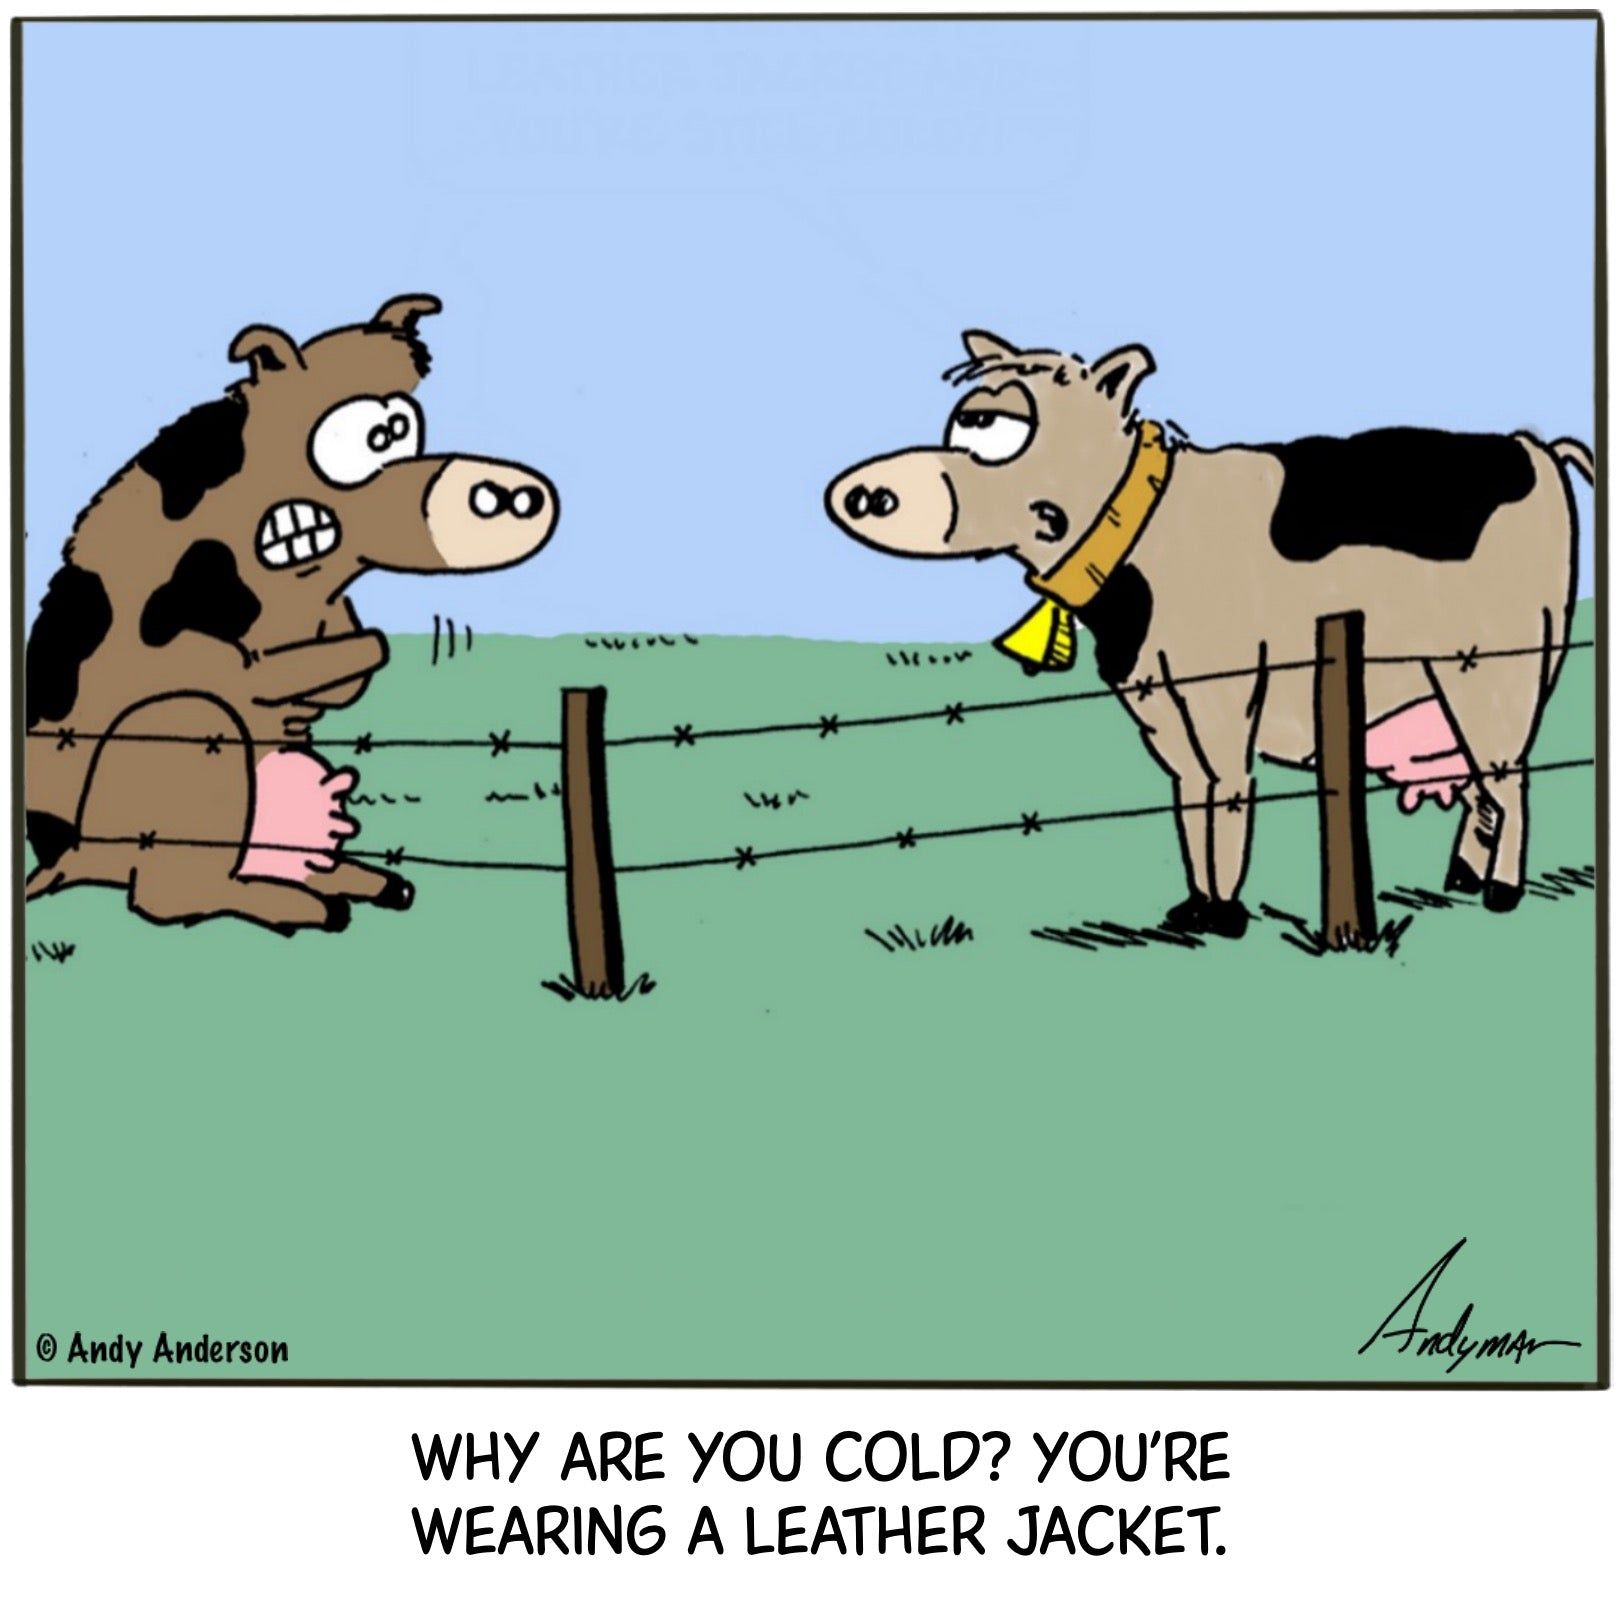 Cartoon about cows being cold even though they're wearing leather